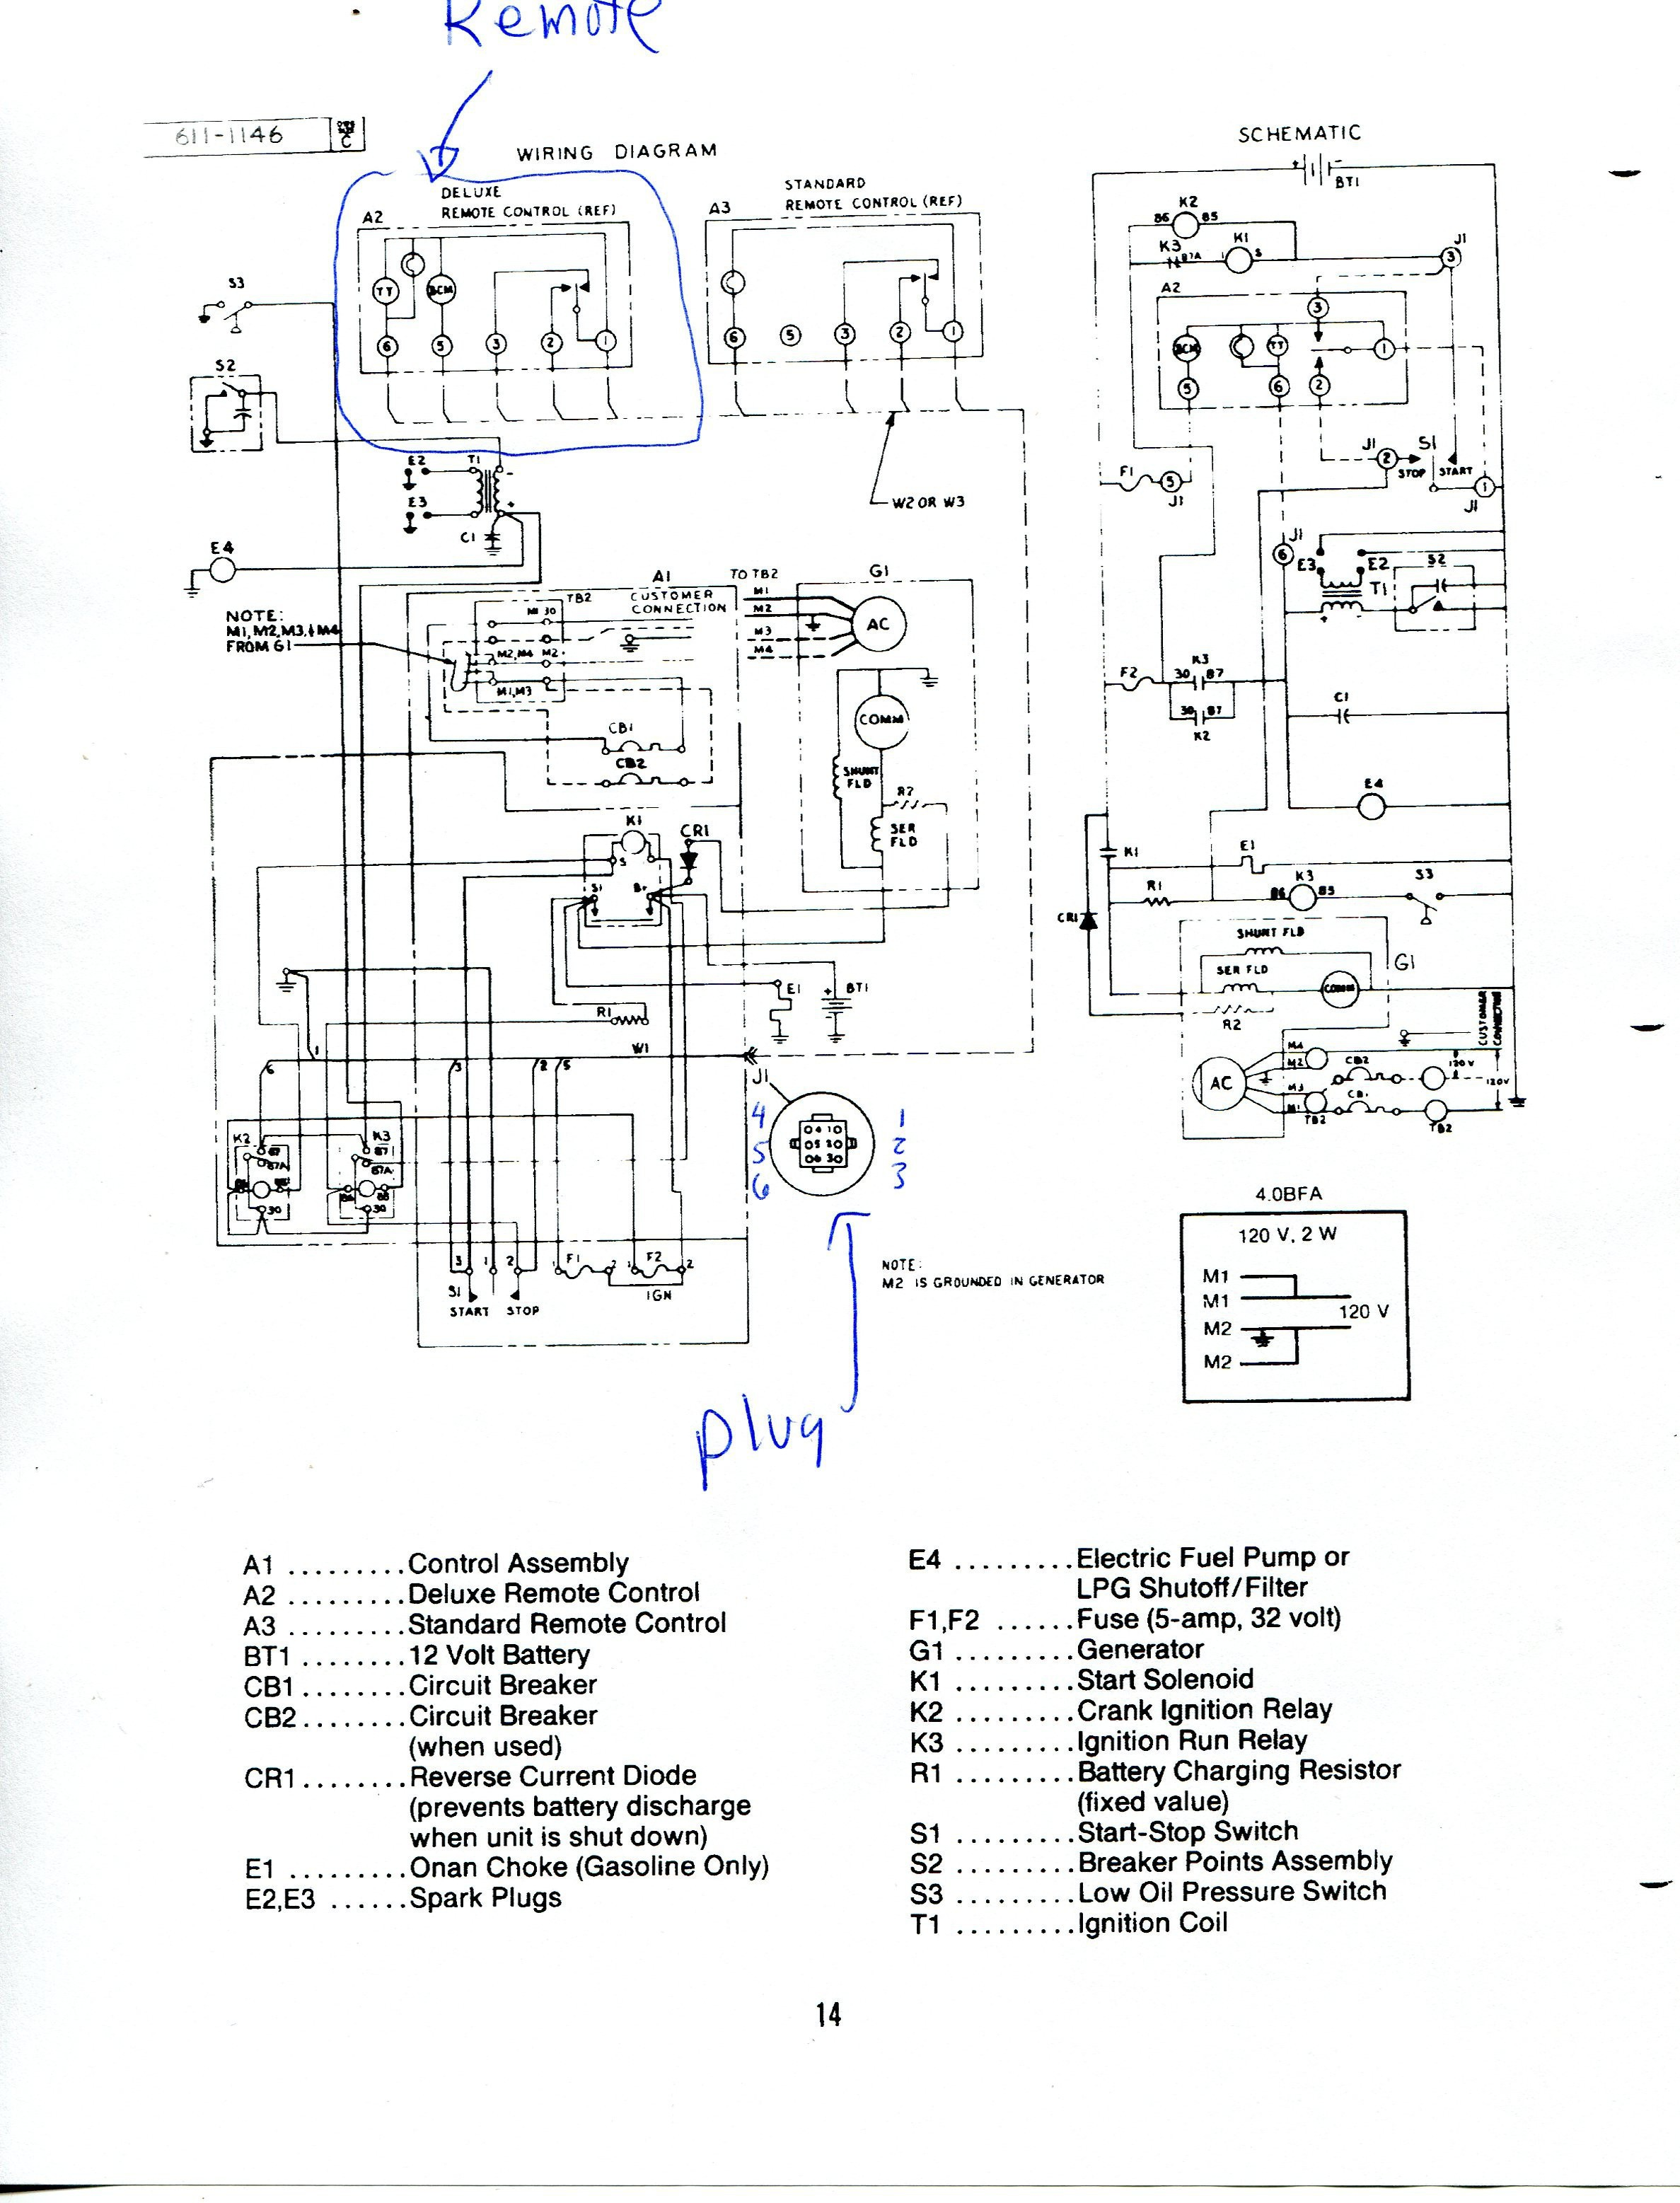 Wiring Diagram For Honda Eu2000i Generator Custom Diagrams Online 6500 Schematic U2022 Rh Tentenny Com Replacement Parts